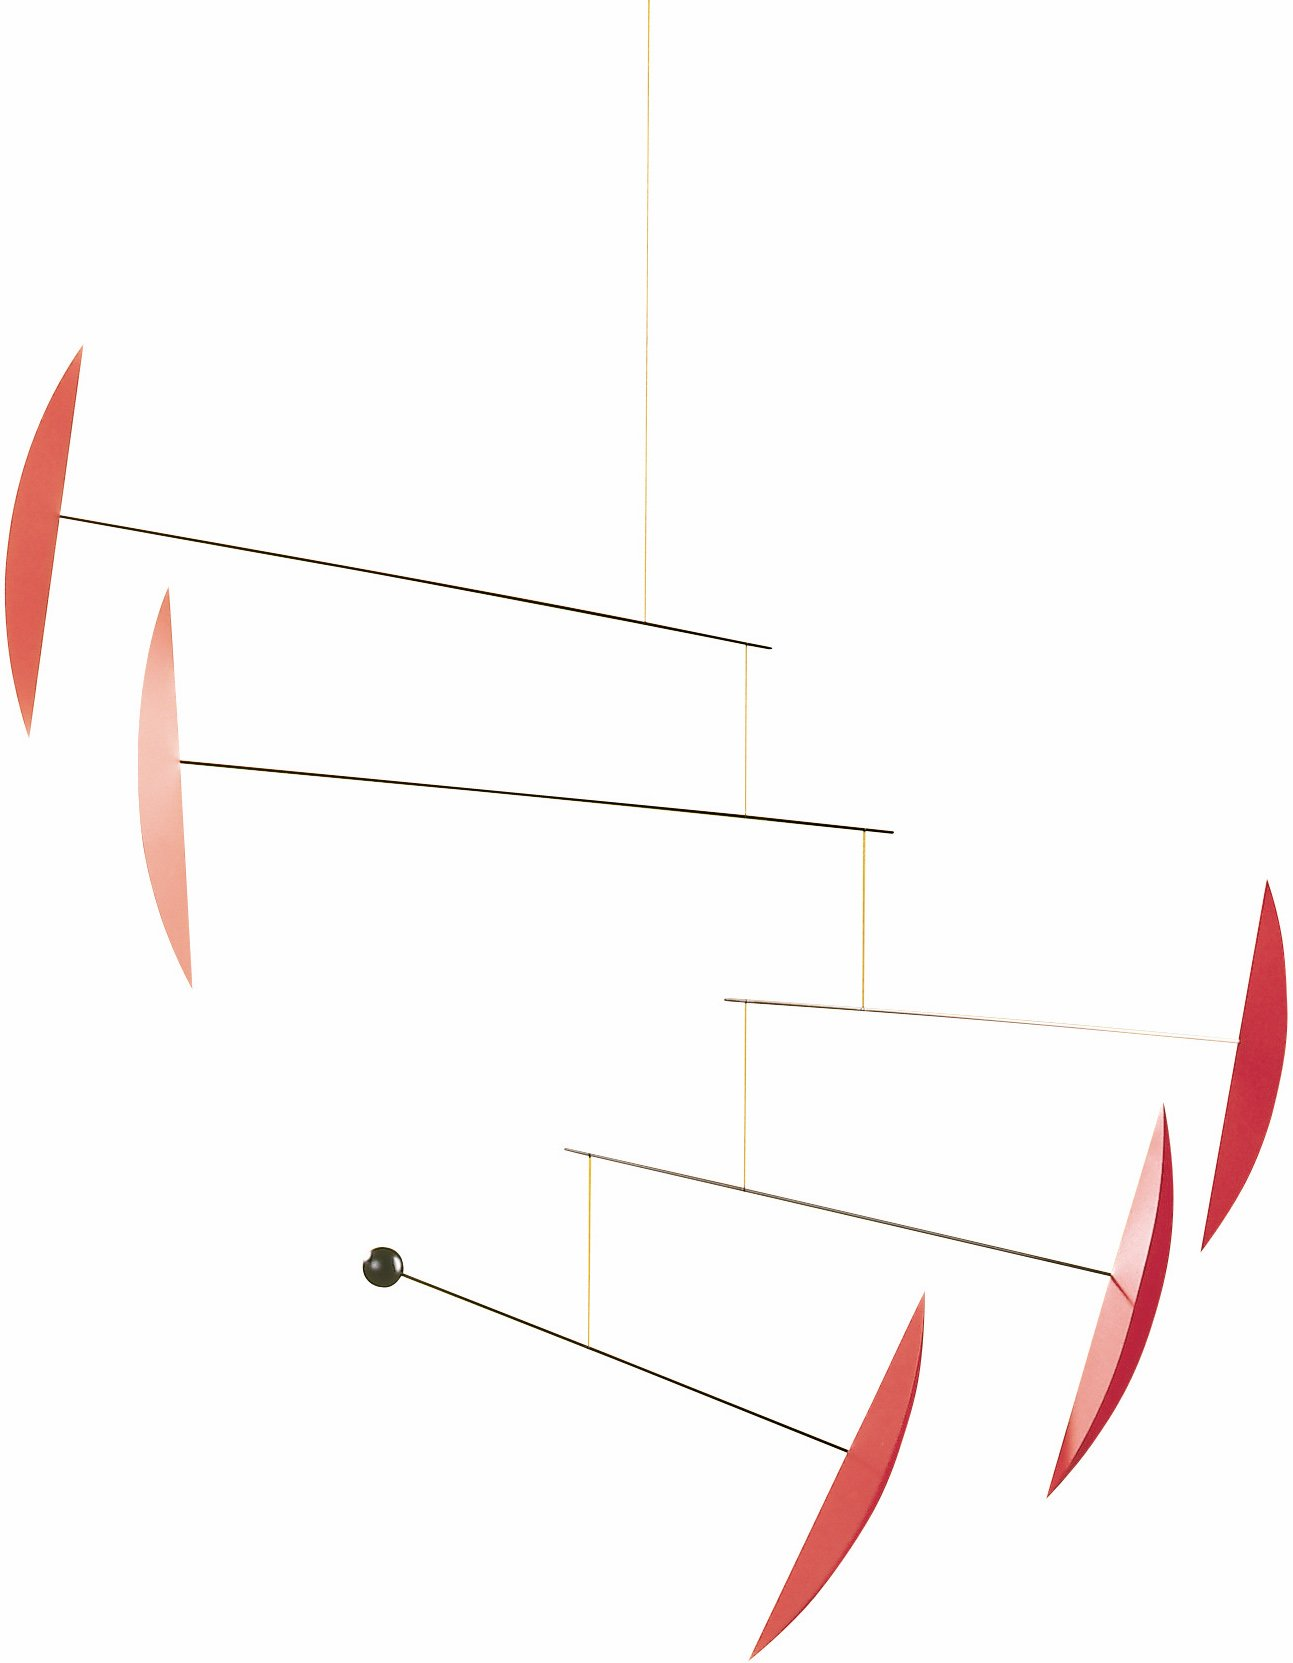 Tango Red Hanging Mobile - 40 Inches - Steel and Plastic - Handmade in Denmark by Flensted